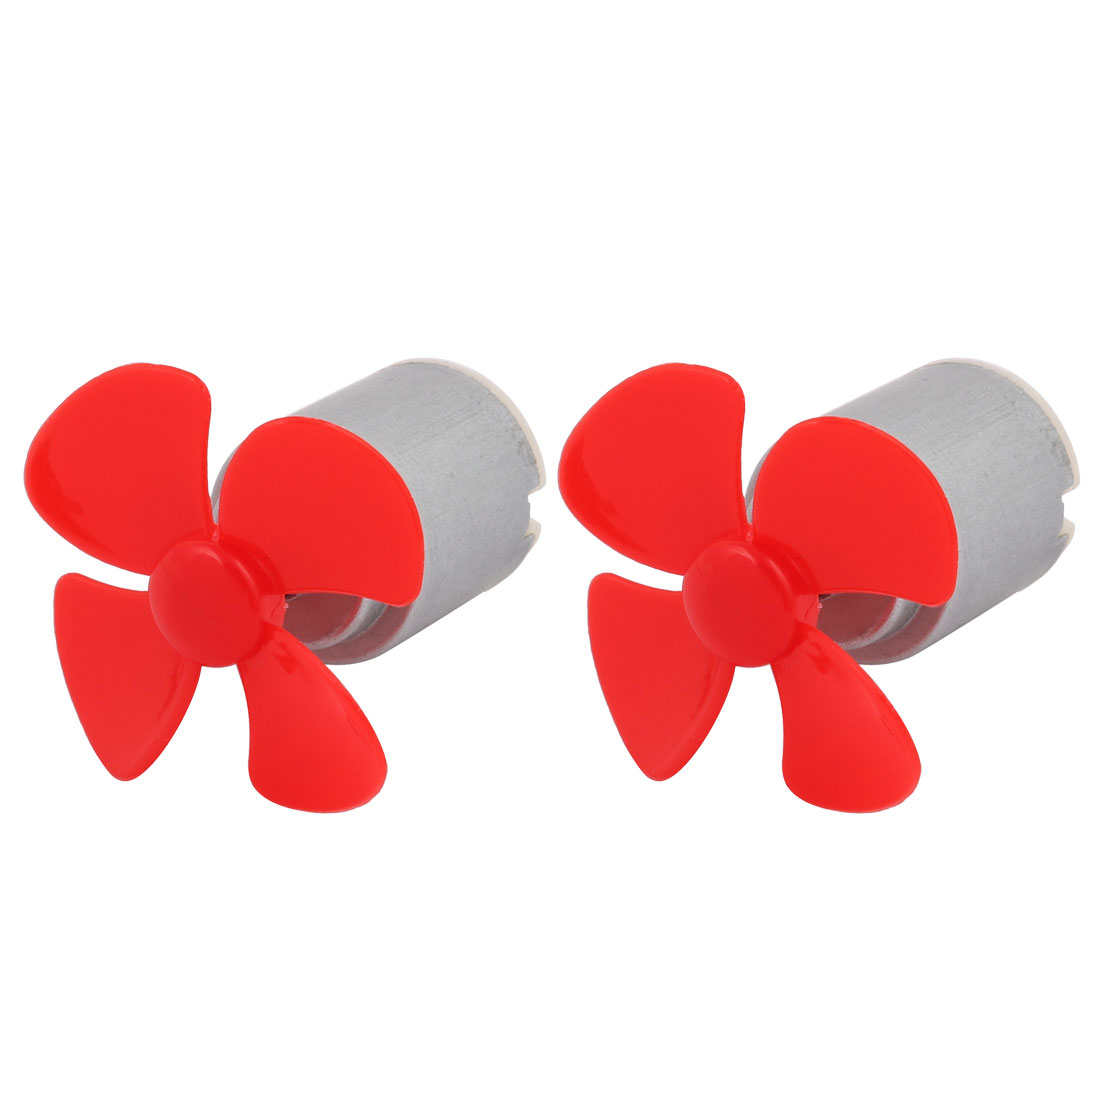 2pcs DC 3V 0.13A 21500RPM Red Strong Force Motor 4 Vanes 40mm Propeller for RC Aircraft